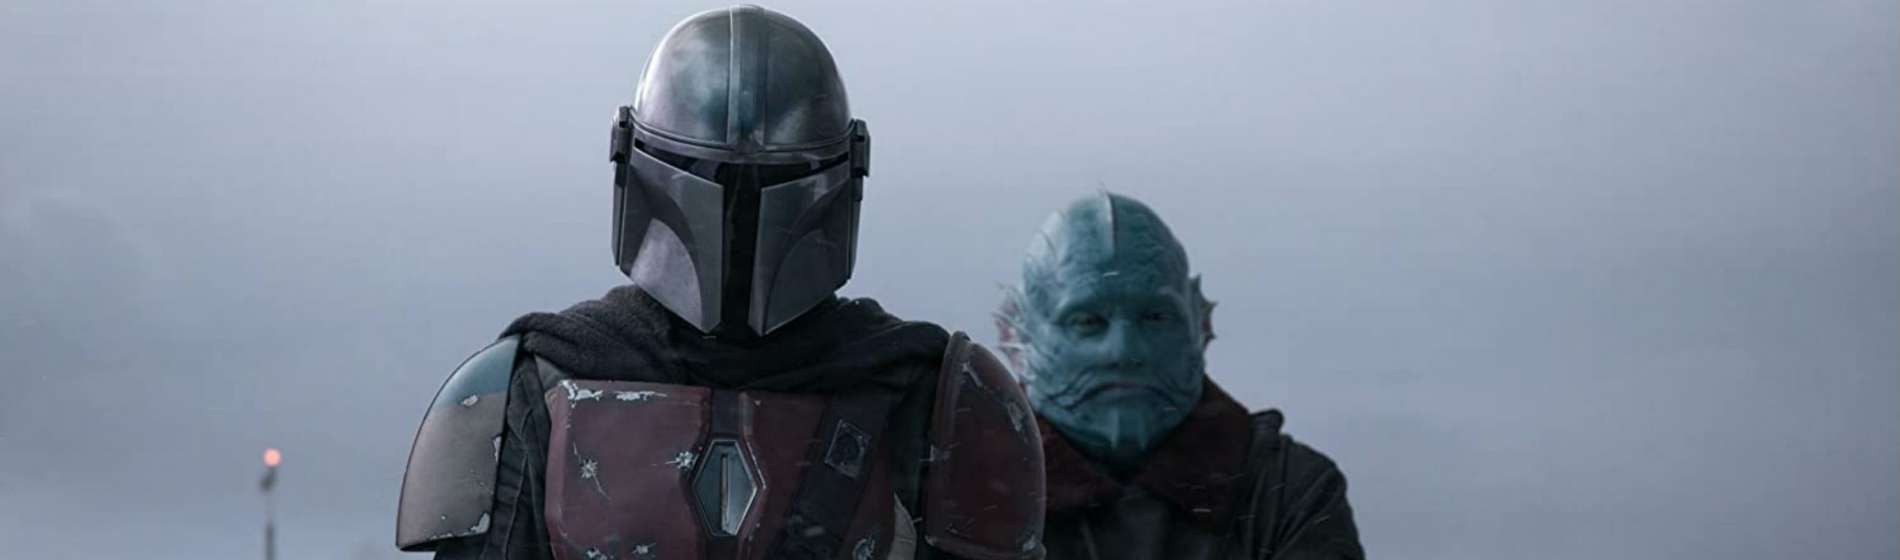 the-mandalorian-and-blue-guy-feature-image